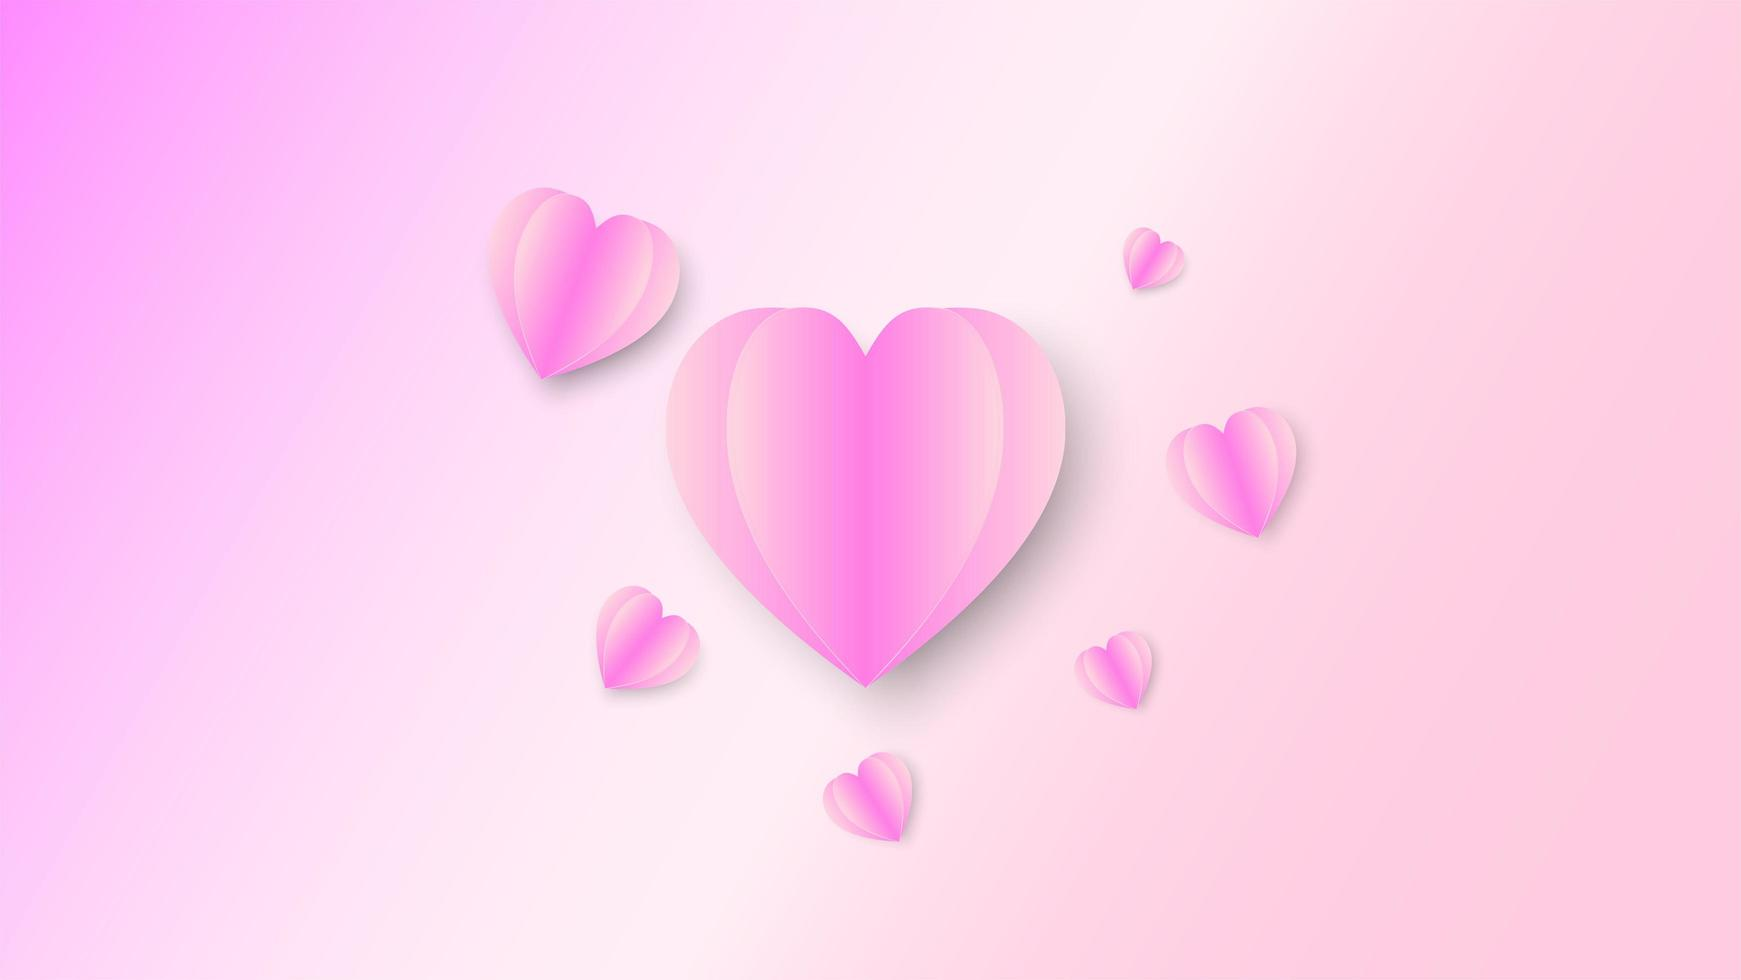 Pink heart abstract vector